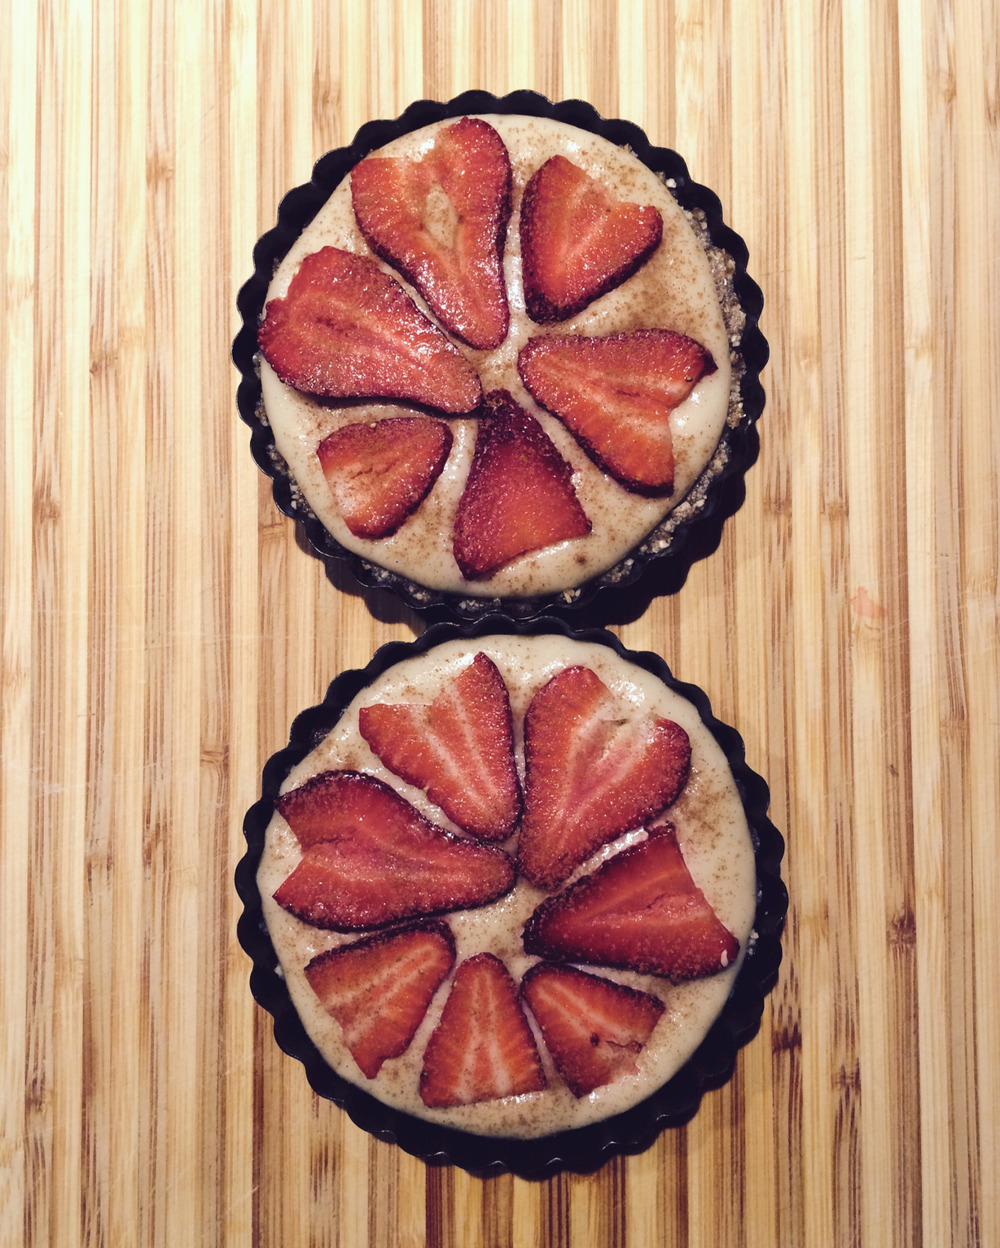 meyer lemon tartlets with brazil nut crust and fresh strawberries